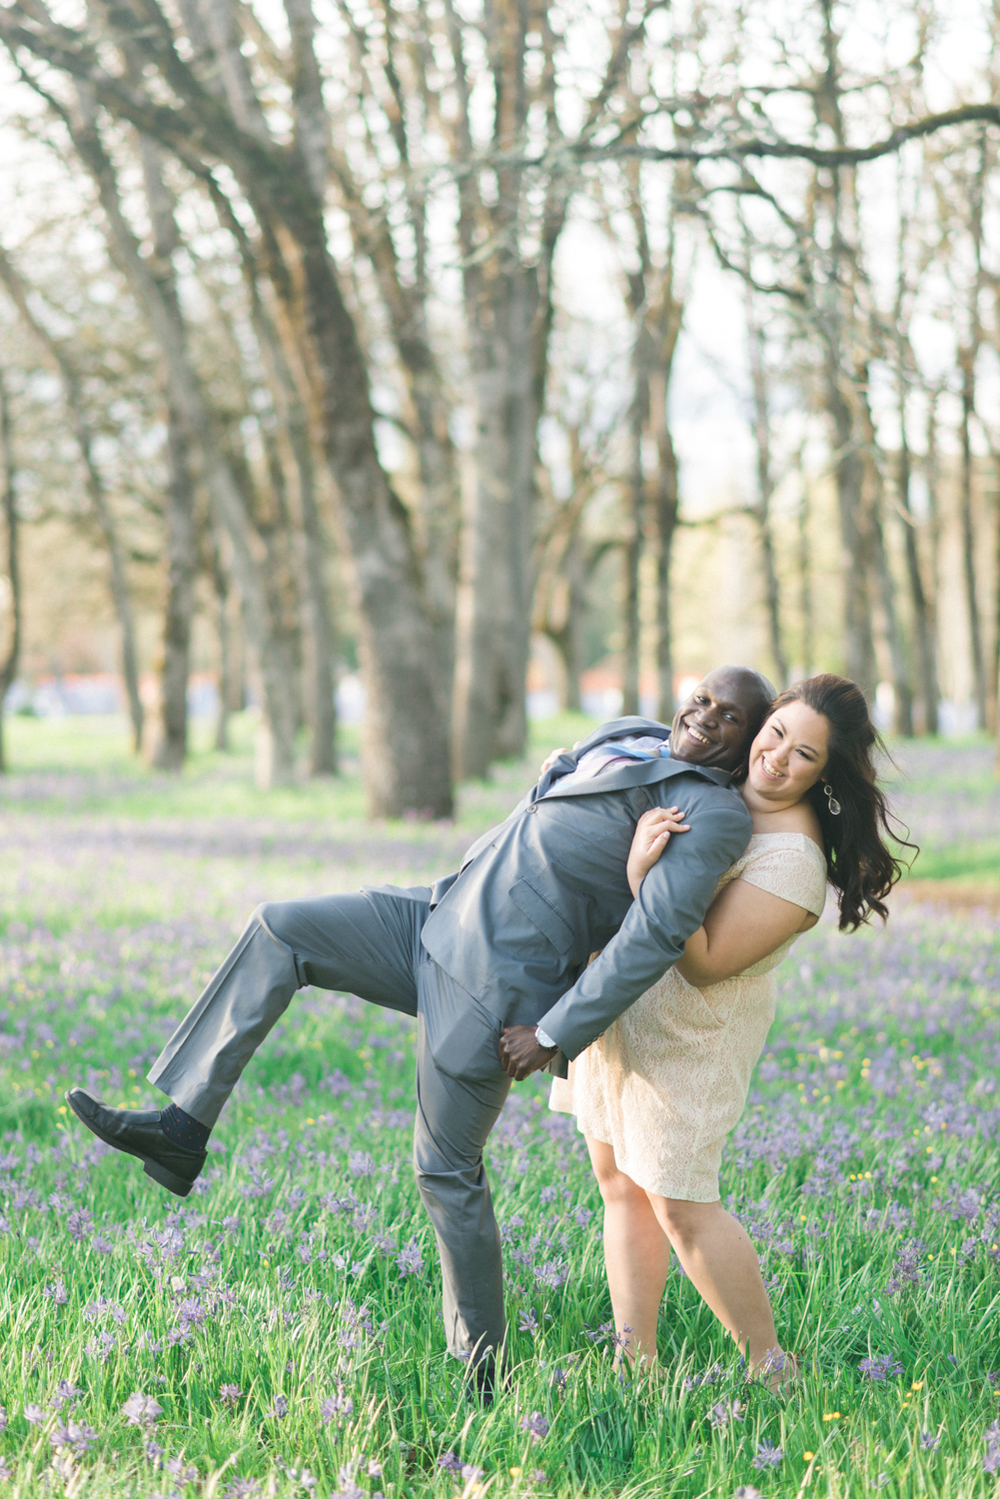 romantic-salem-engagement-photos-bush-park-shelley-marie-photo-9